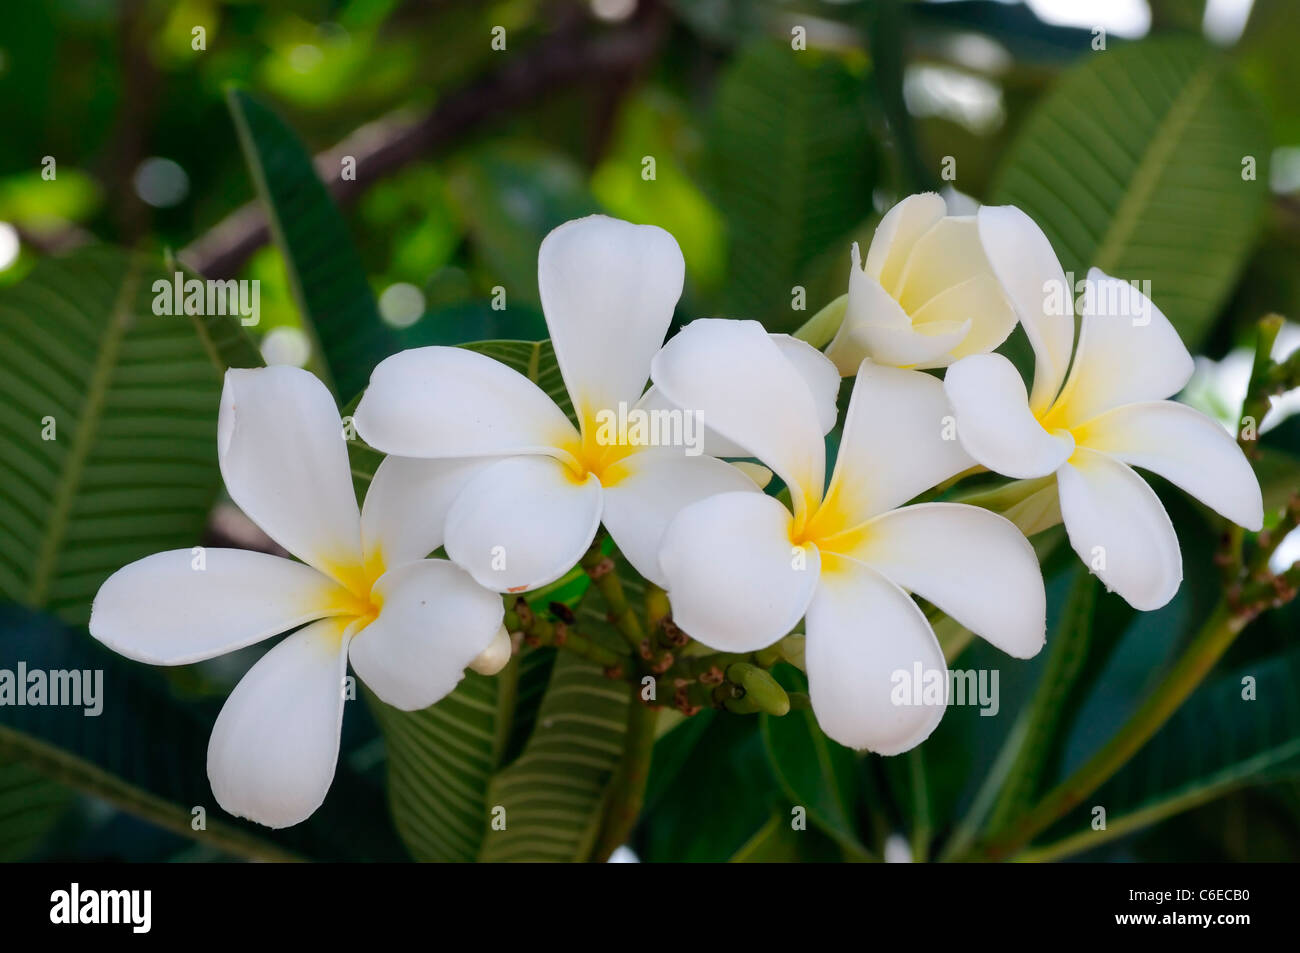 Yellow jasmine flower stock photos yellow jasmine flower stock white jasmine flowers with yellow centre siem reap cambodia exotic asia asian flora floral stock izmirmasajfo